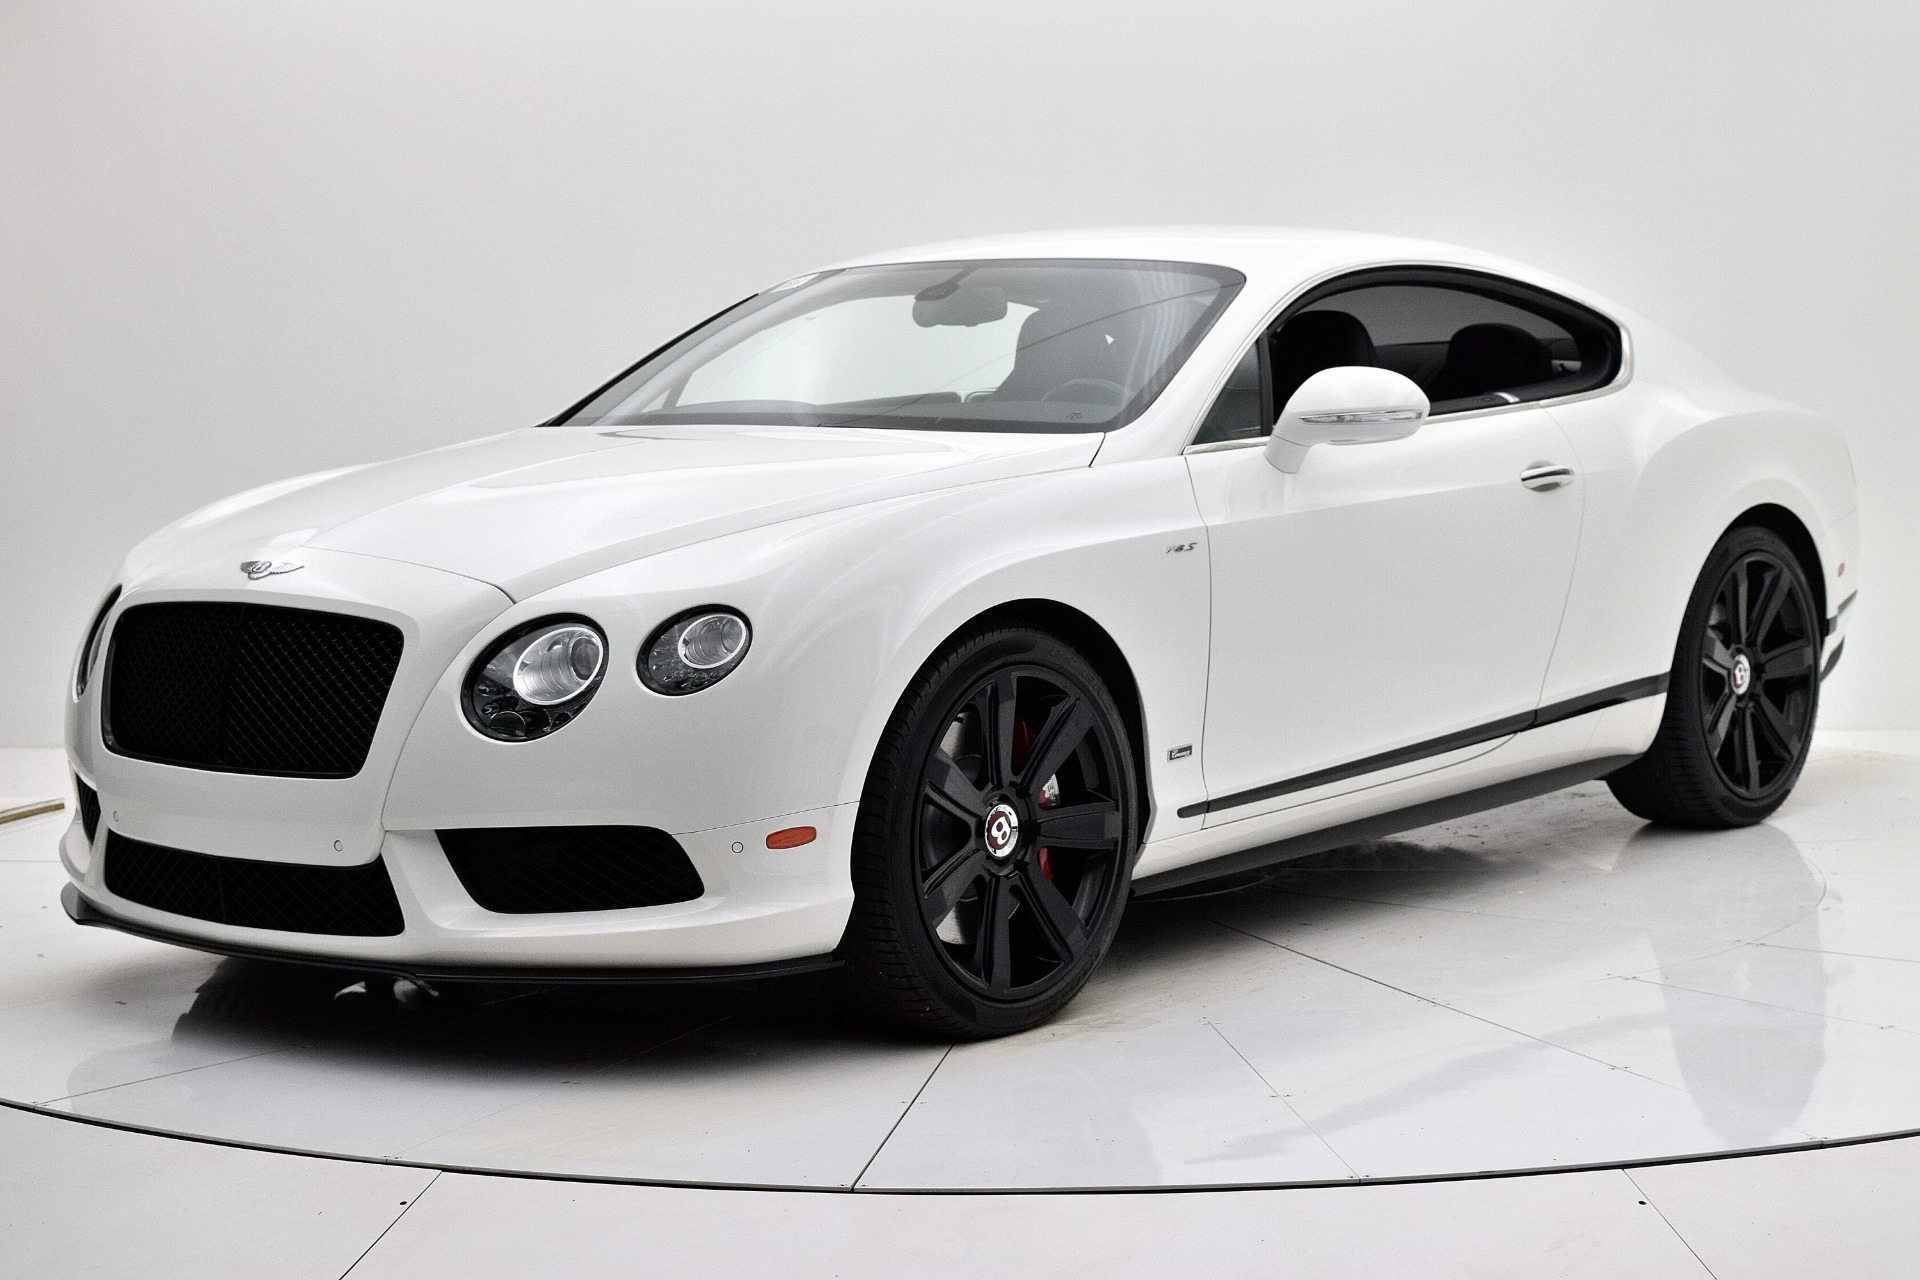 Bentley Continental GT V8 S 2015 For Sale $145880 Stock Number 1521JI